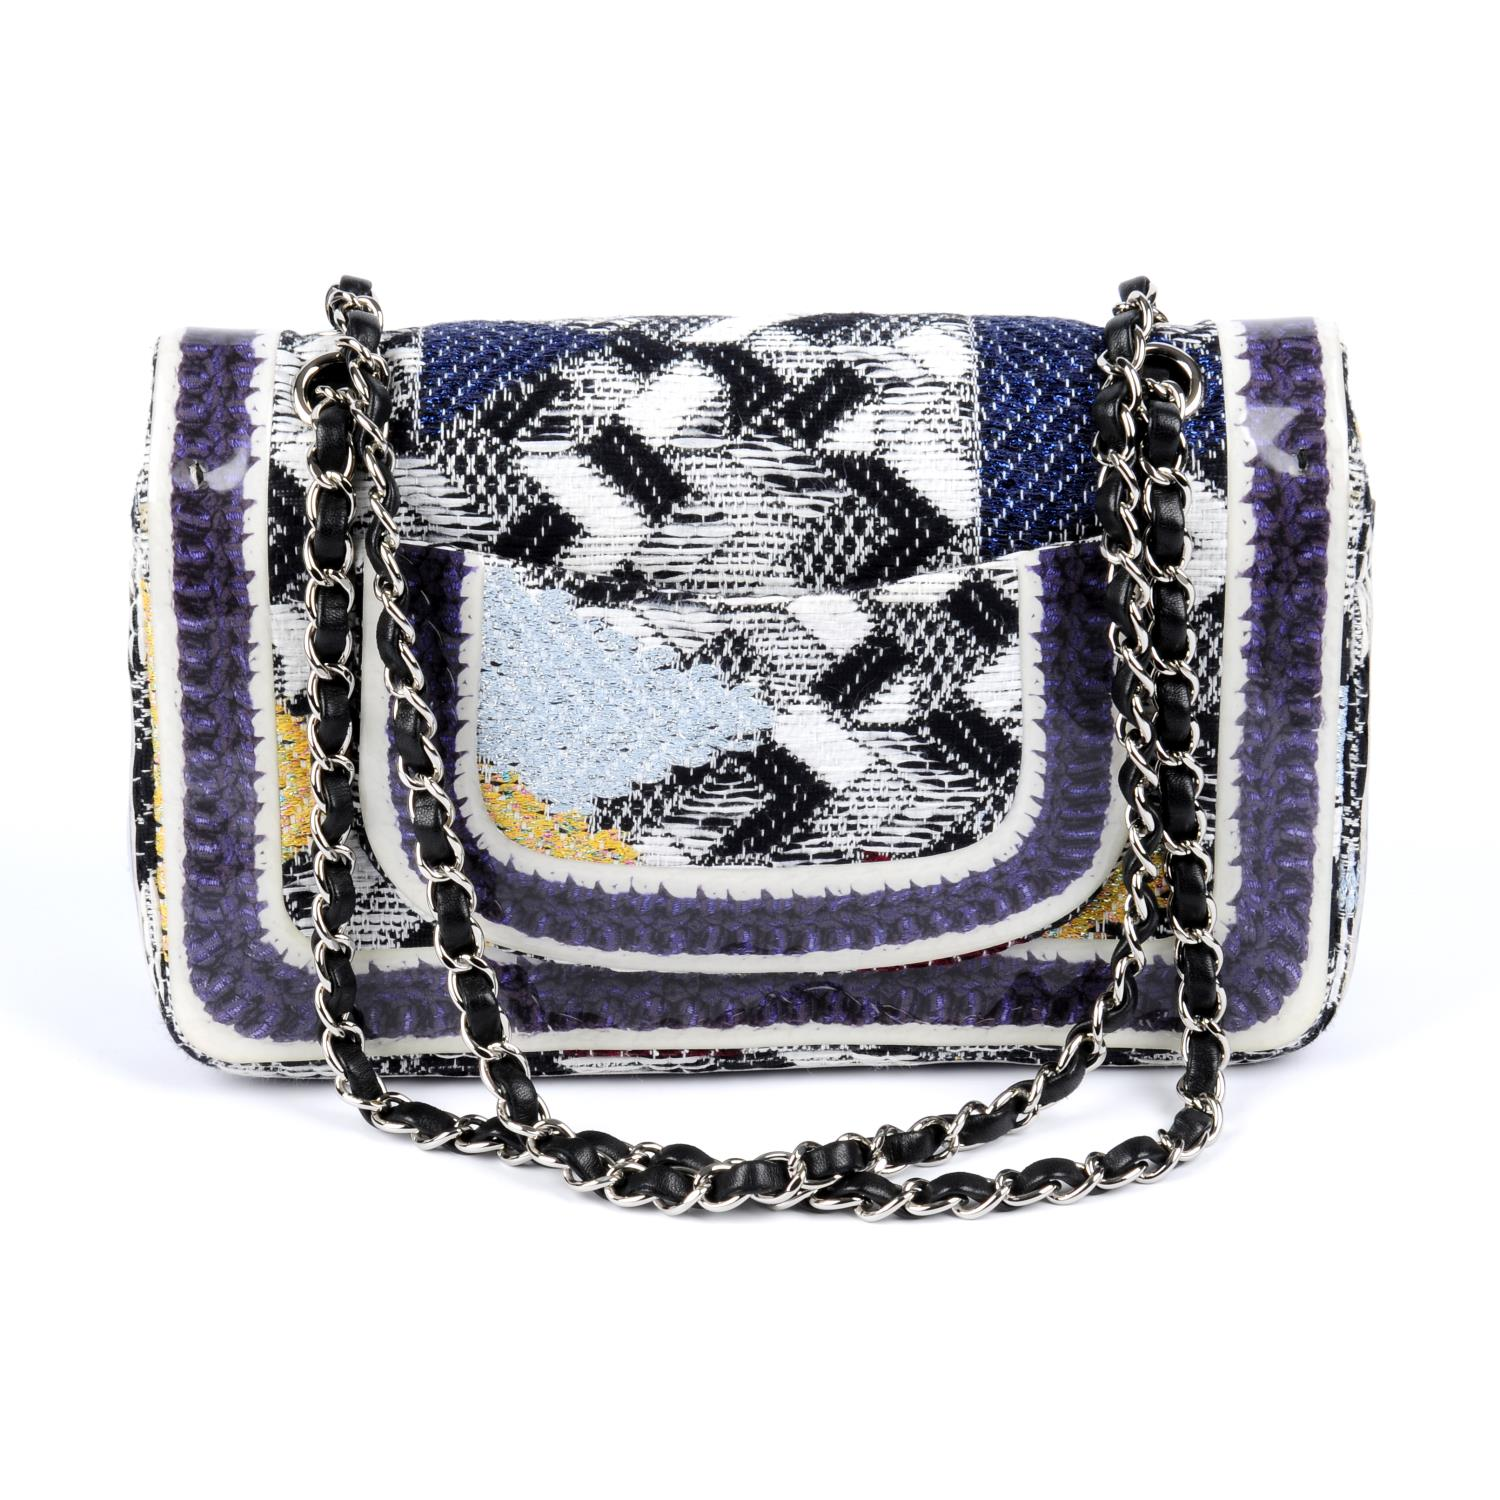 Lot 42 - CHANEL - a Silicone-Covered Tweed Double Flap handbag.